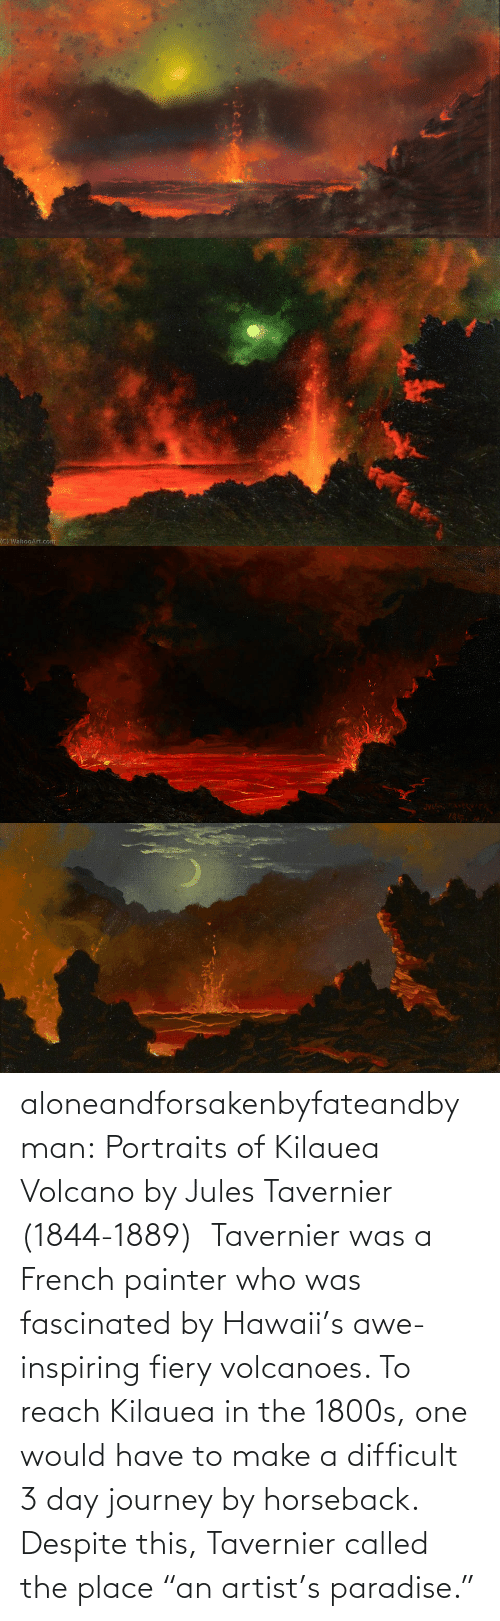 "Paradise: aloneandforsakenbyfateandbyman:  Portraits of Kilauea Volcano by Jules Tavernier (1844-1889)    Tavernier was a French painter who was fascinated by Hawaii's awe-inspiring fiery volcanoes. To reach Kilauea in the 1800s, one would have to make a difficult 3 day journey by horseback. Despite this, Tavernier called the place ""an artist's paradise."""